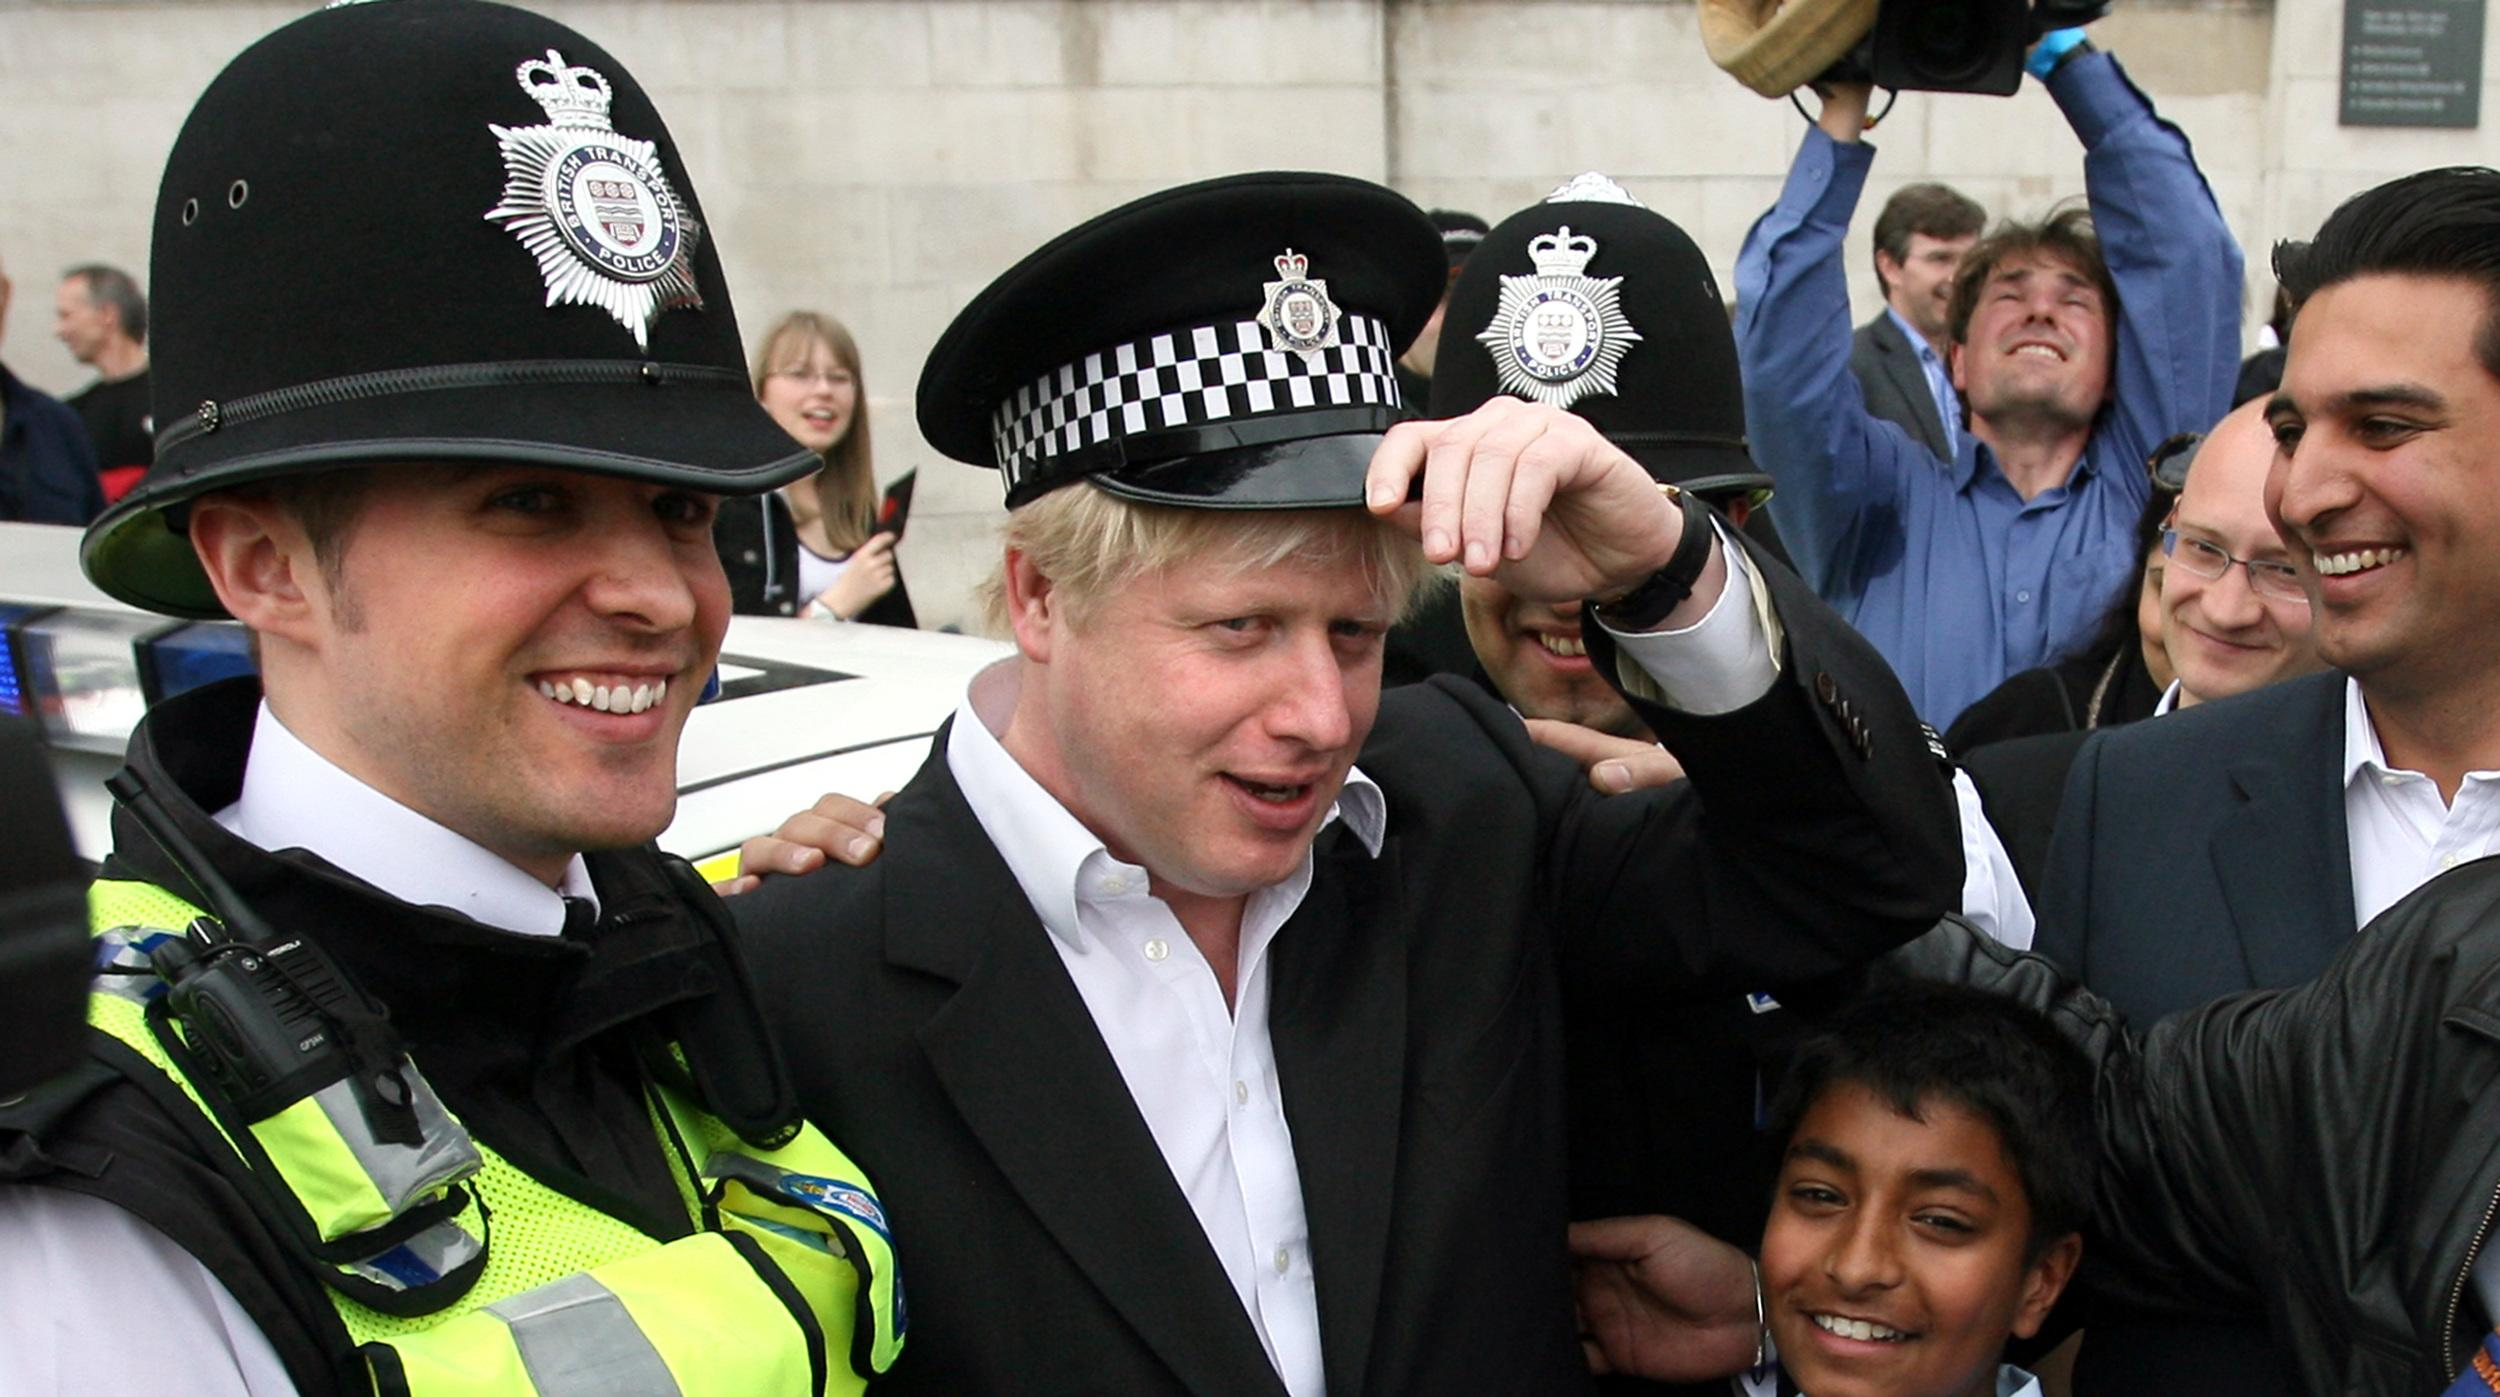 Newly elected London Mayor Boris Johnson wears a policeman's hat in Trafalgar Square, central London during the Sikh New Year Festival celebrations of Vaisakhi.